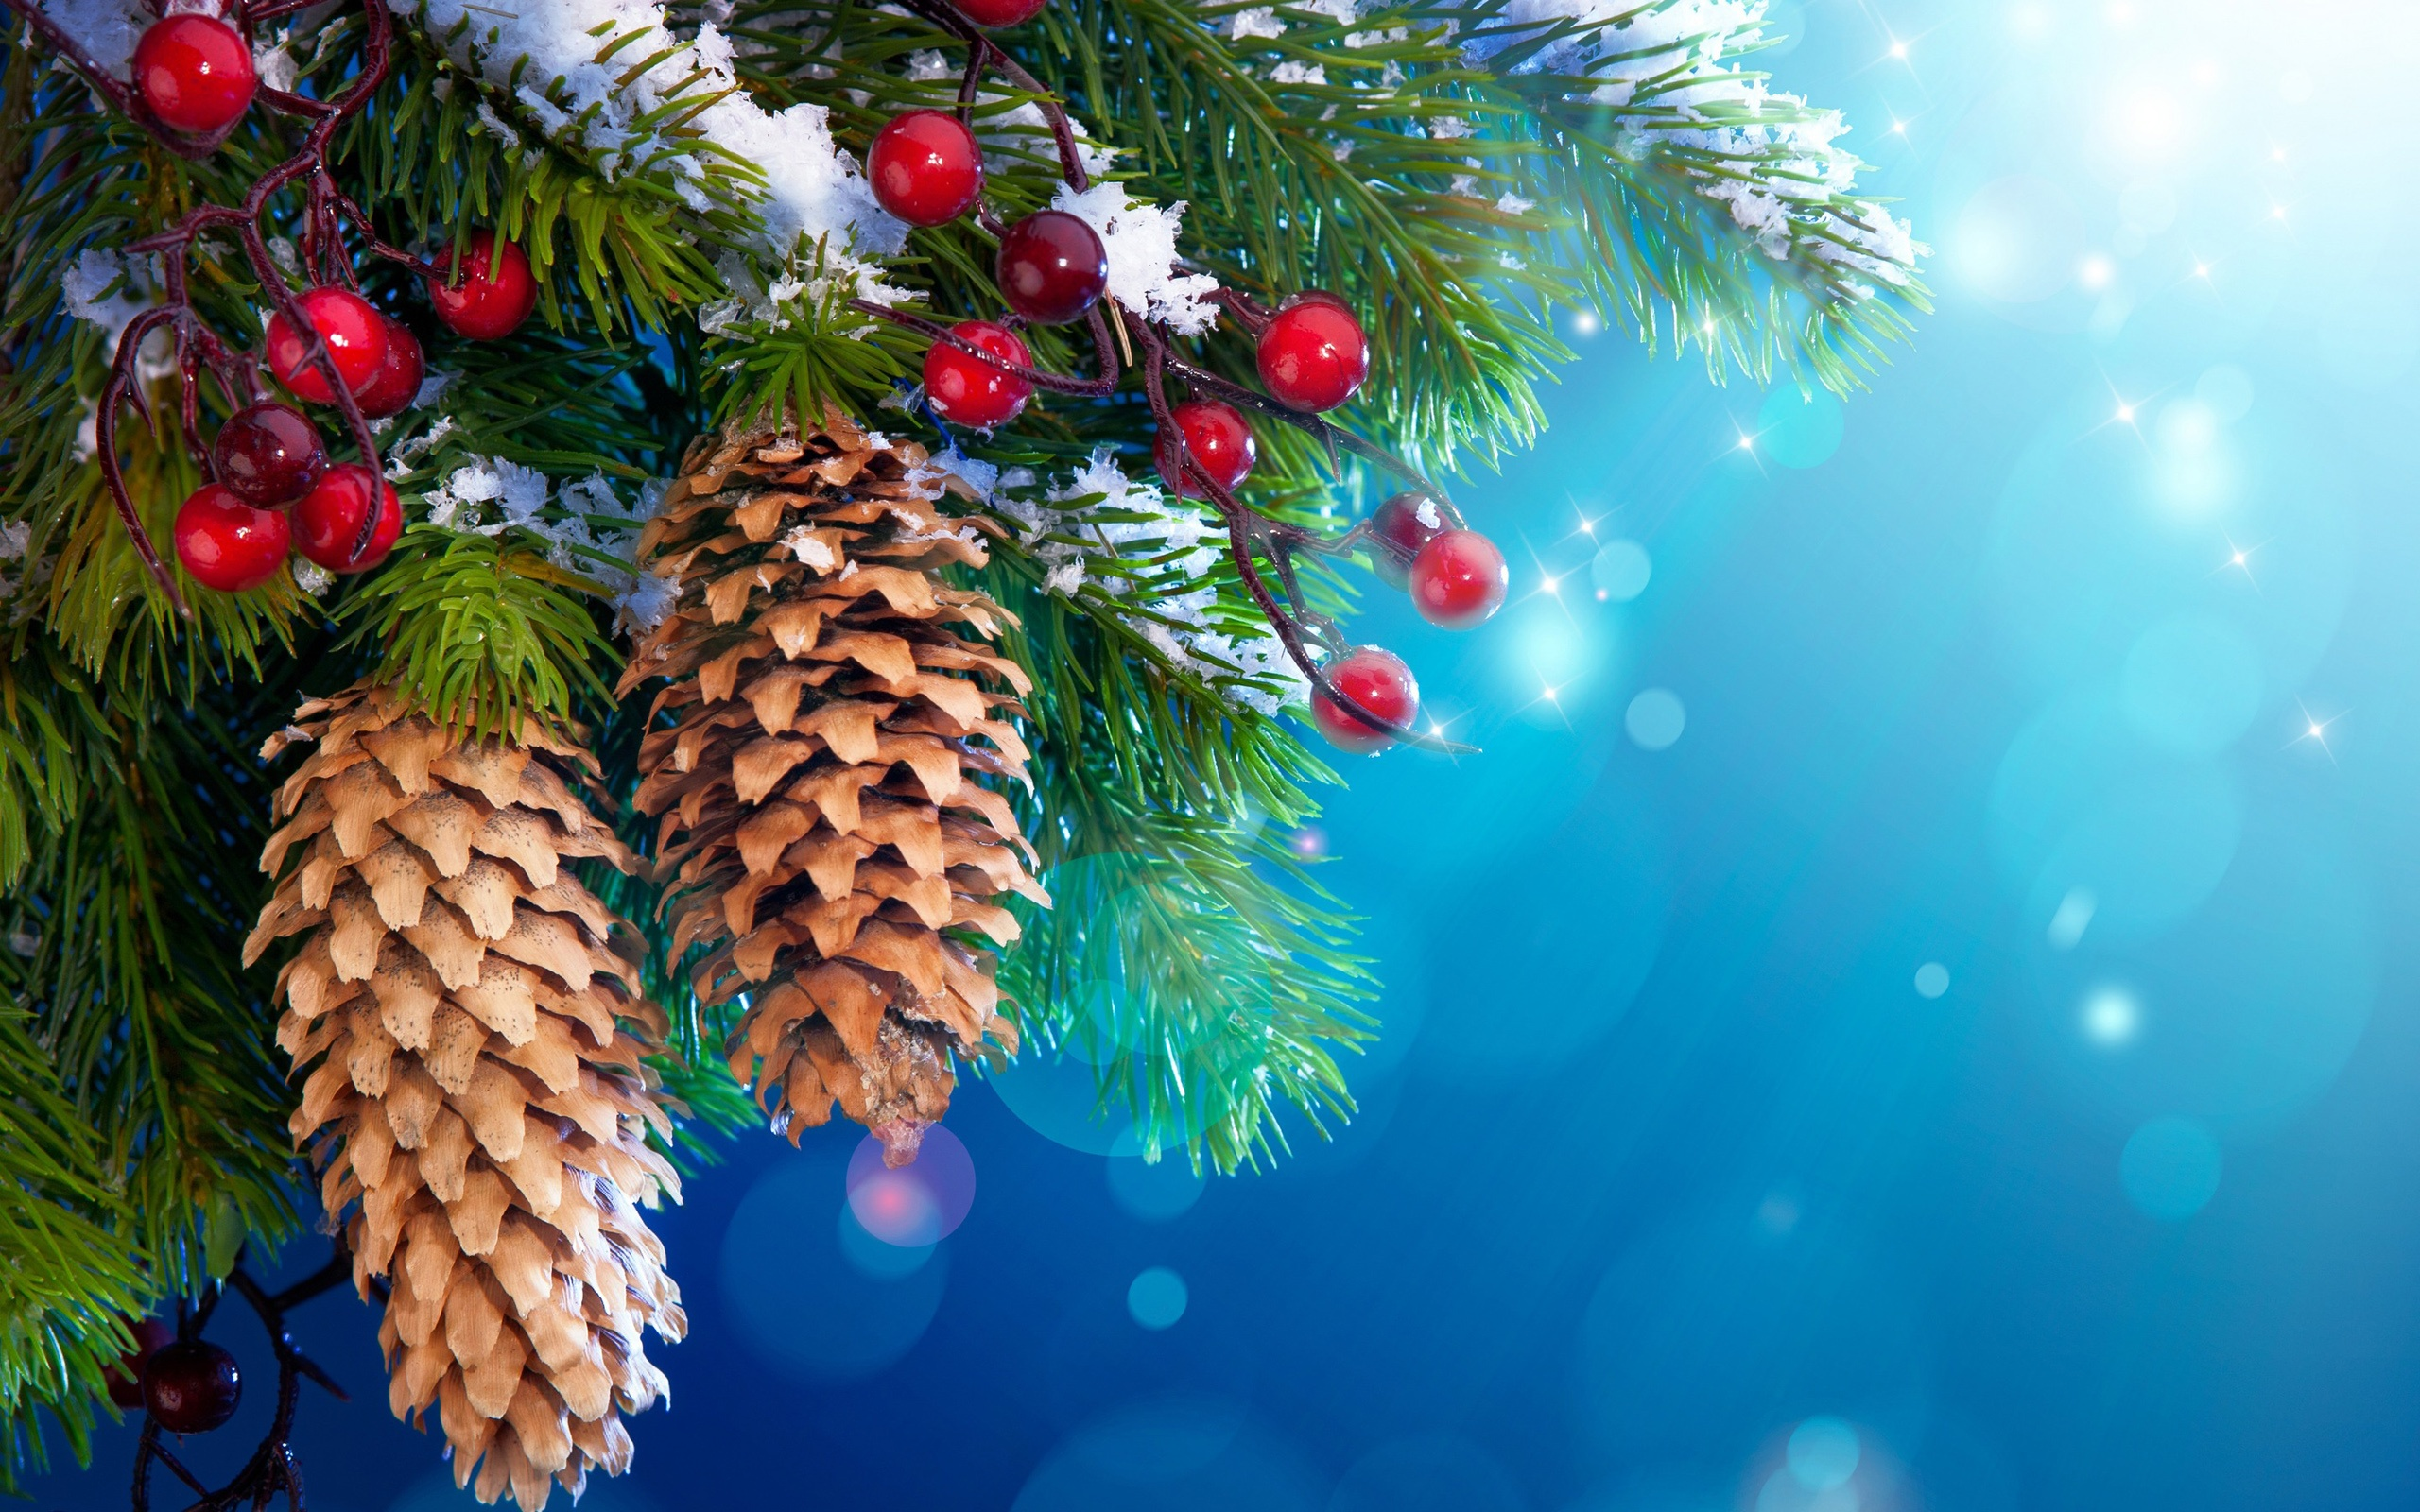 Wallpaper New Year Christmas Tree Decoration Snow Twigs Berries